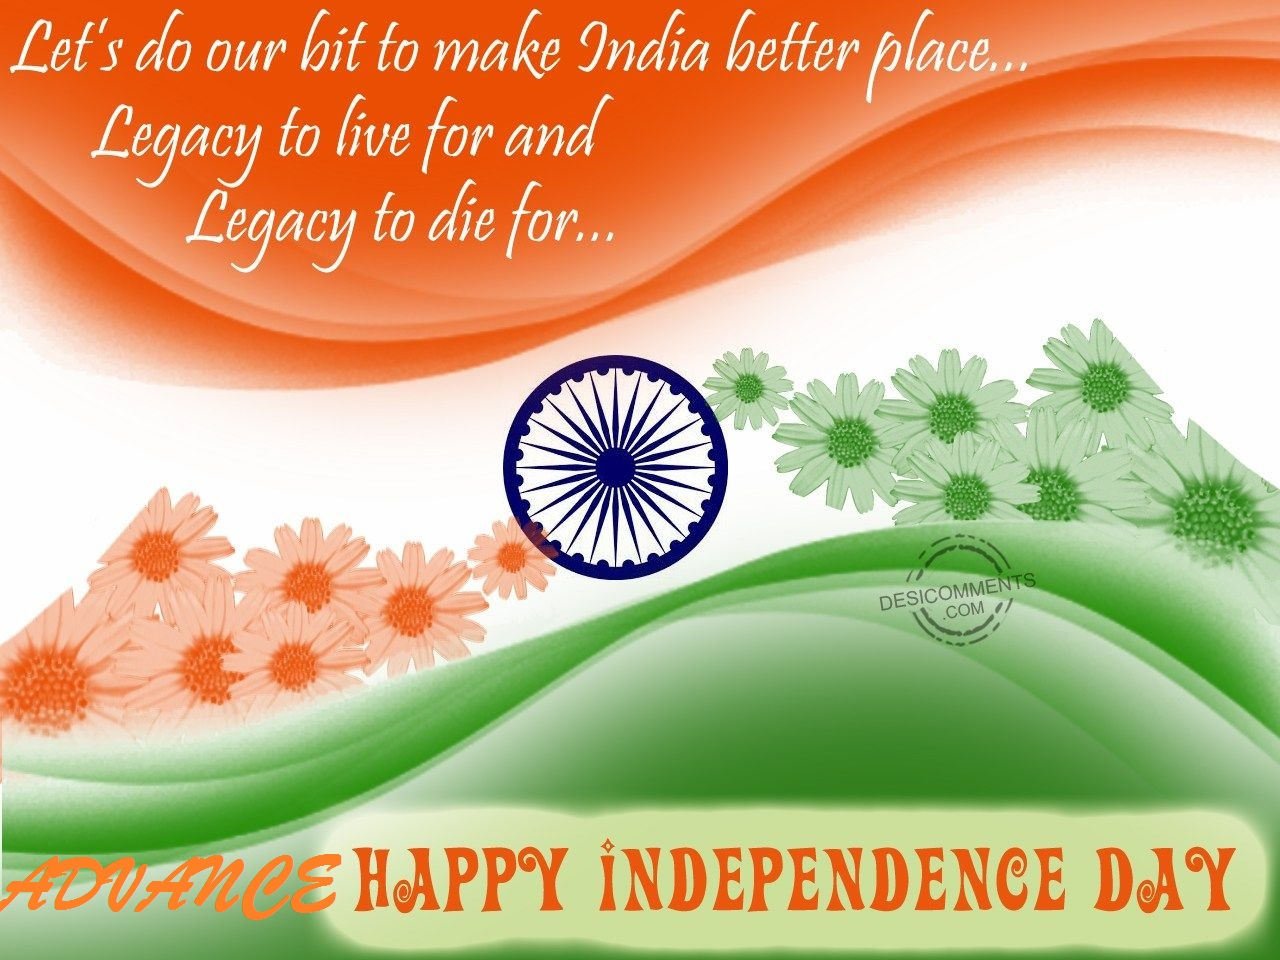 Advance Independence Day Wishes 2018 Photos Images Pics Quotes